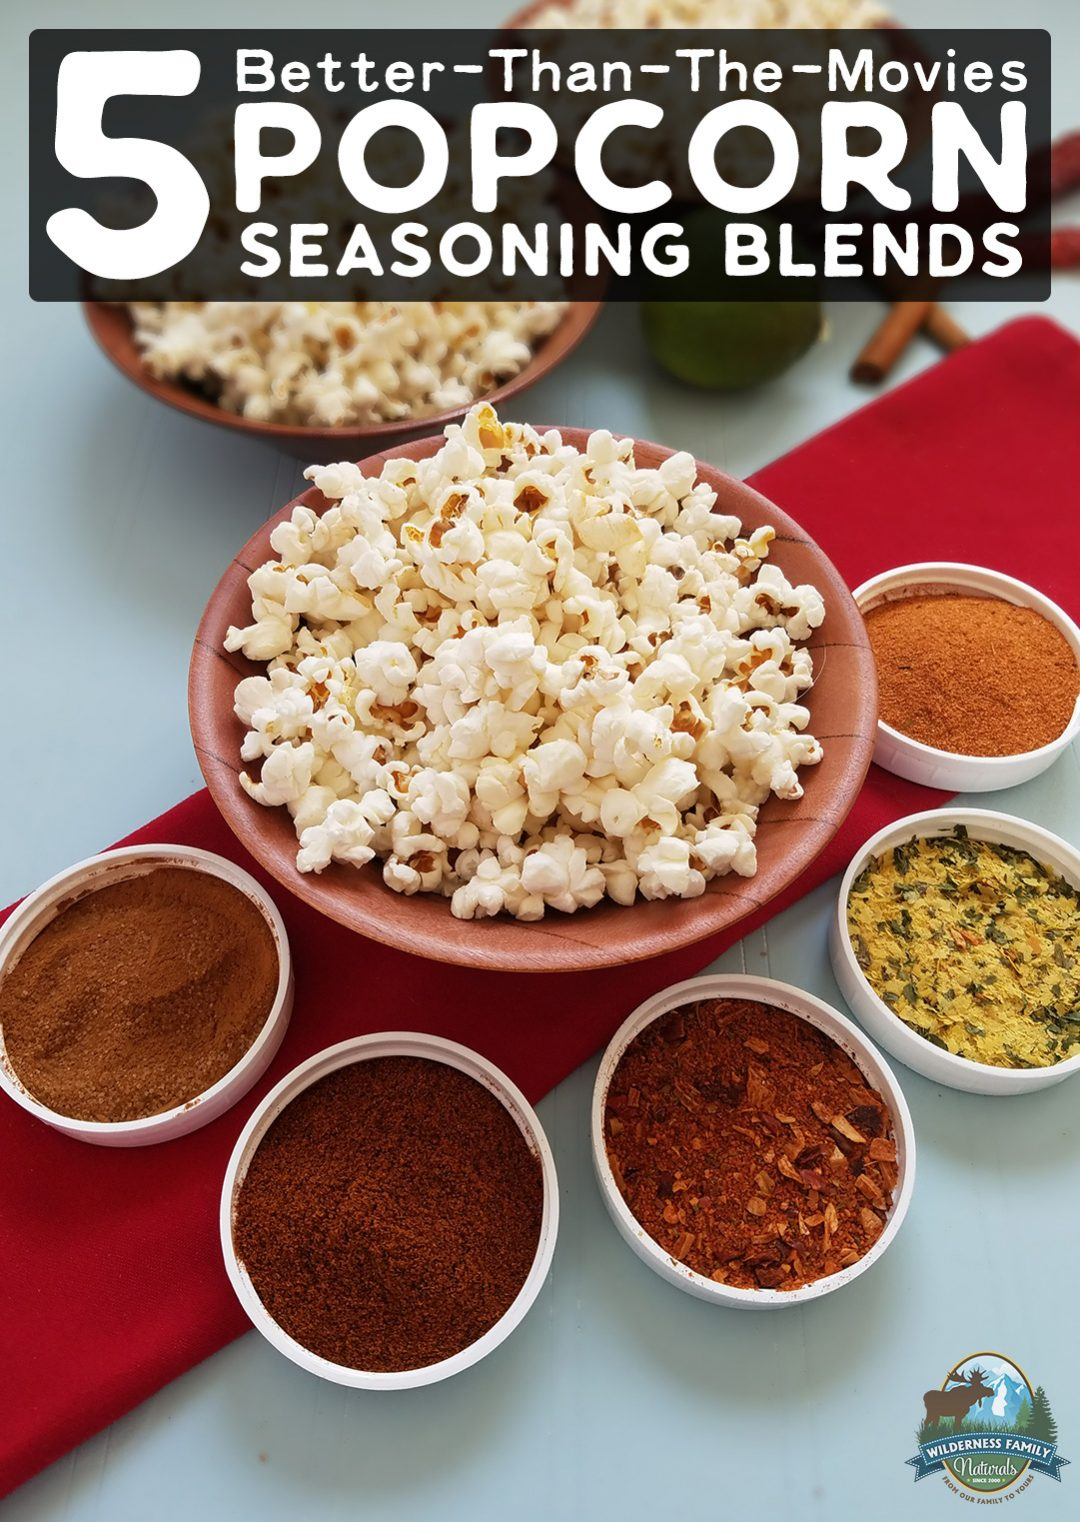 5 Better-Than-The-Movies Popcorn Seasoning Blends | Homemade popcorn is cheap, easy, and a really fun snack for movie night, road trips, parties, or even during the work day. These 5 tasty popcorn seasoning blends will take your buttered popcorn up a notch -- and you won't find anything like them at the movies! | WildernessFamilyNaturals.com